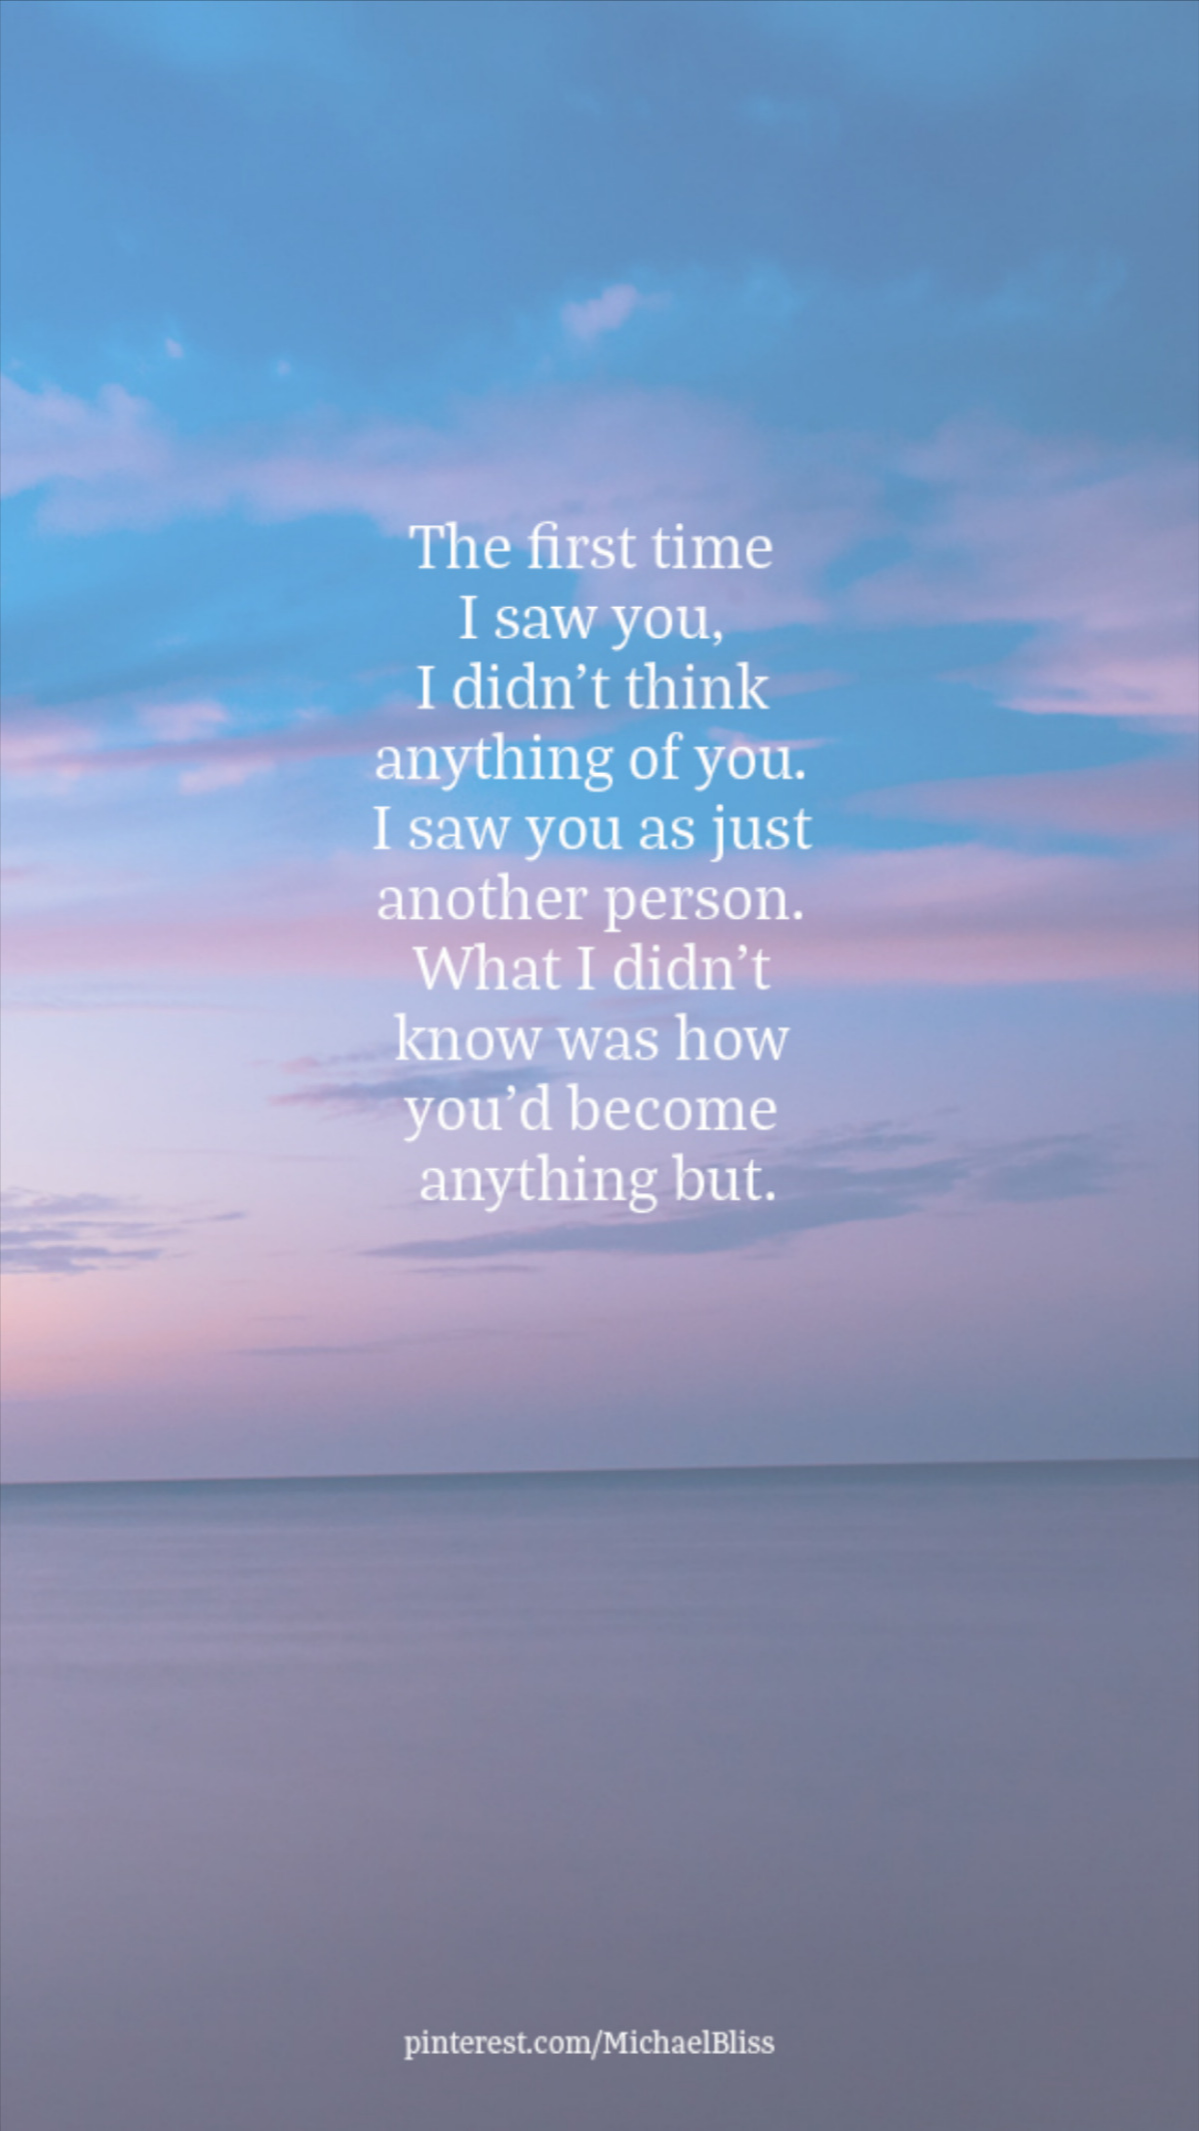 The first time I saw you,